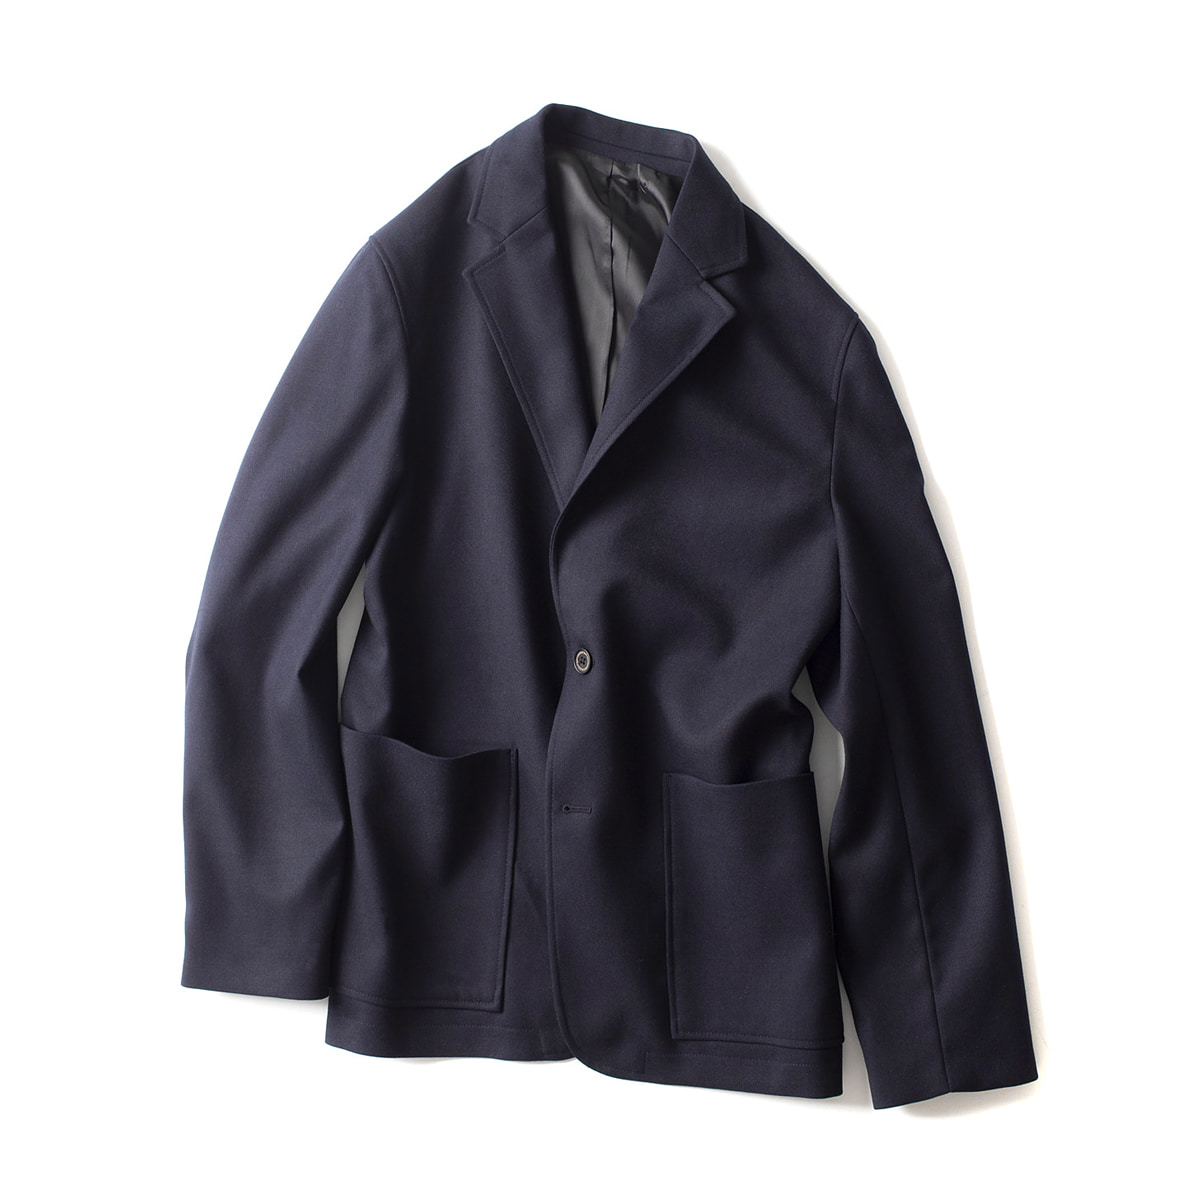 [BIRTHDAYSUIT] DAILY SUIT JACKET 'NAVY'